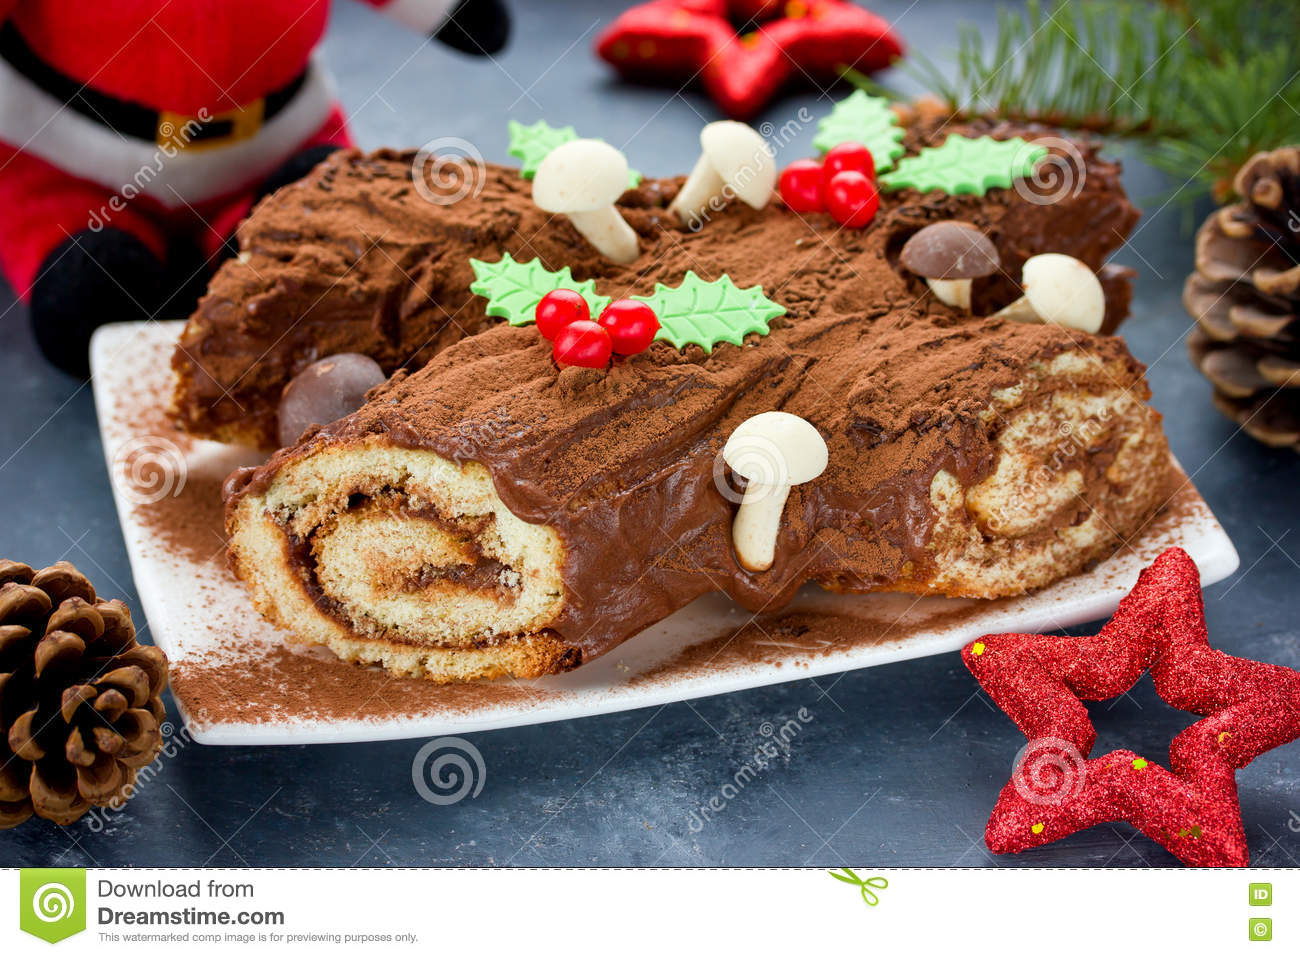 Christmas Yule Log Cake Decorated With Chocolate Holly Mushrooms